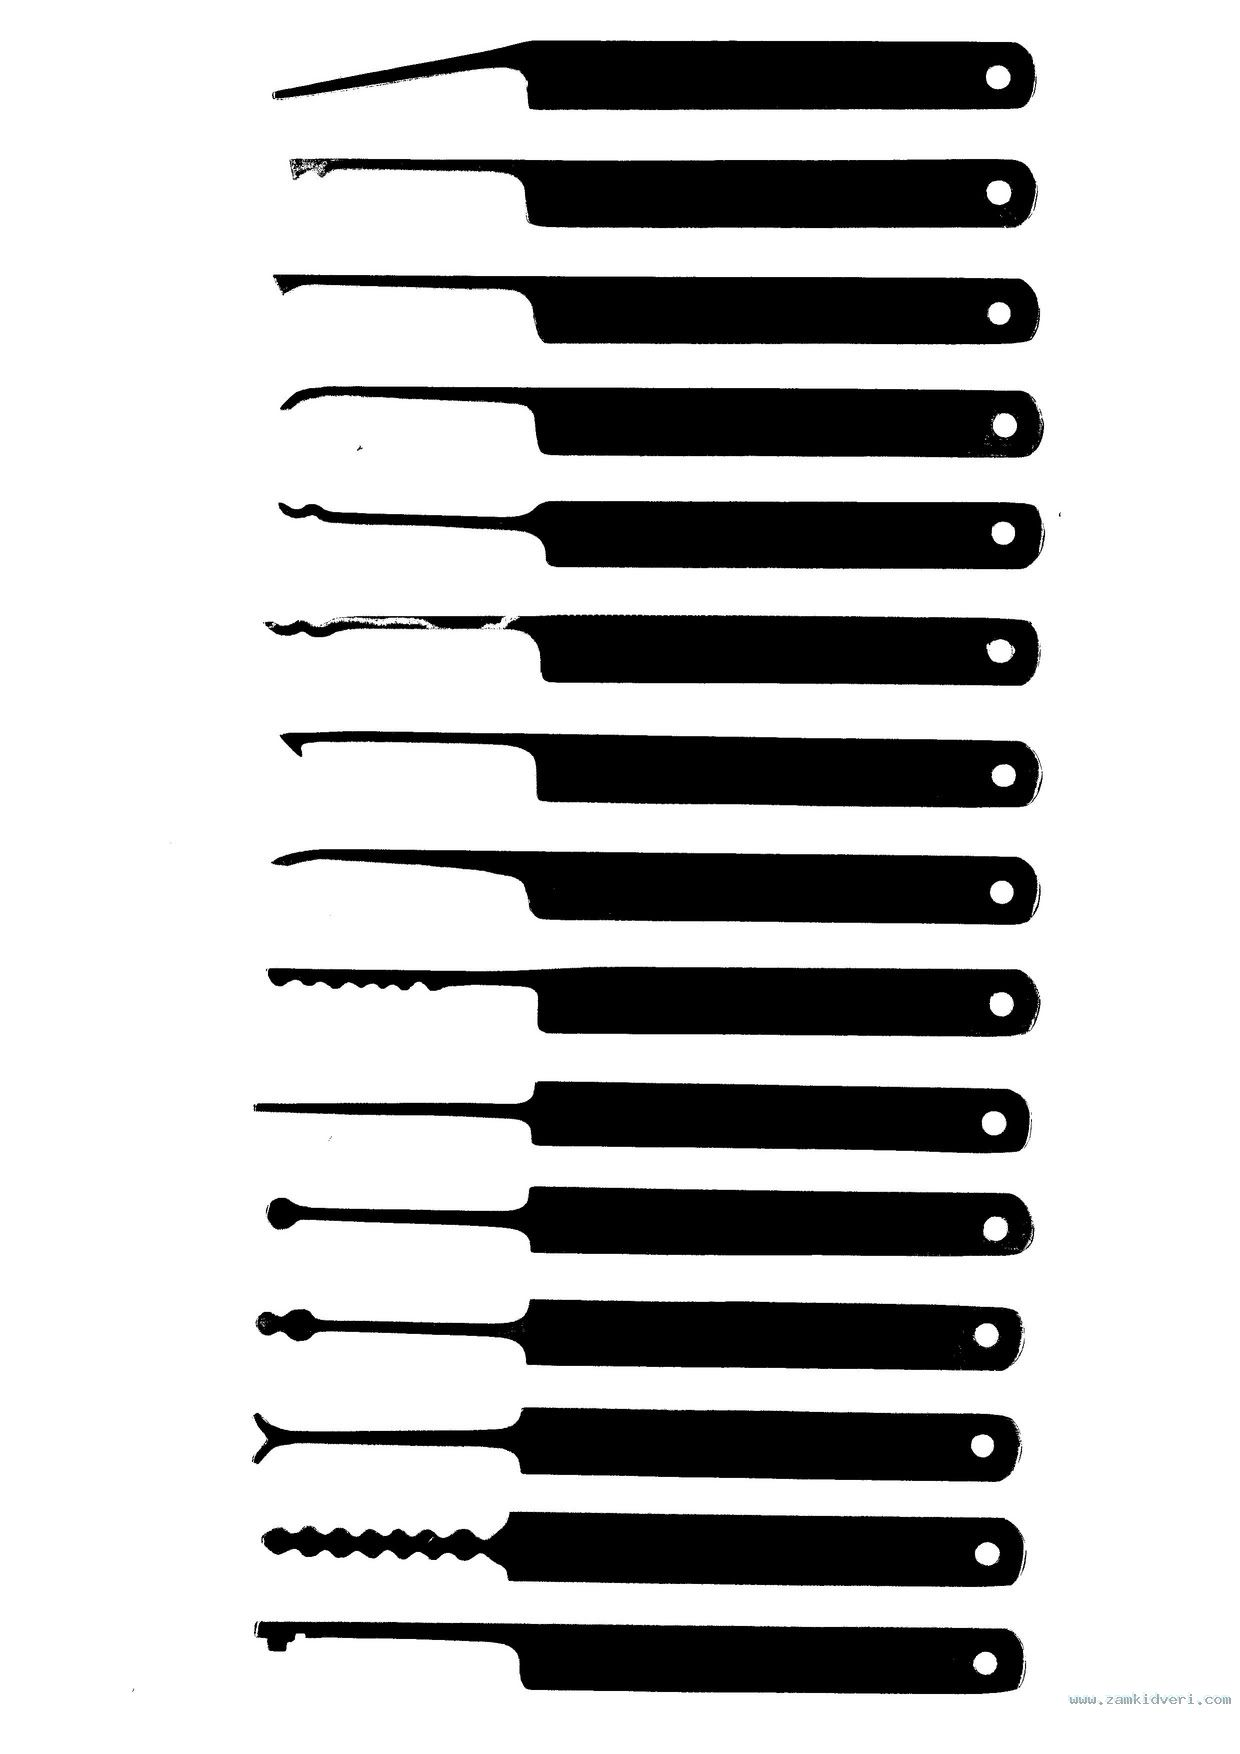 lock pick rake template - 1 2